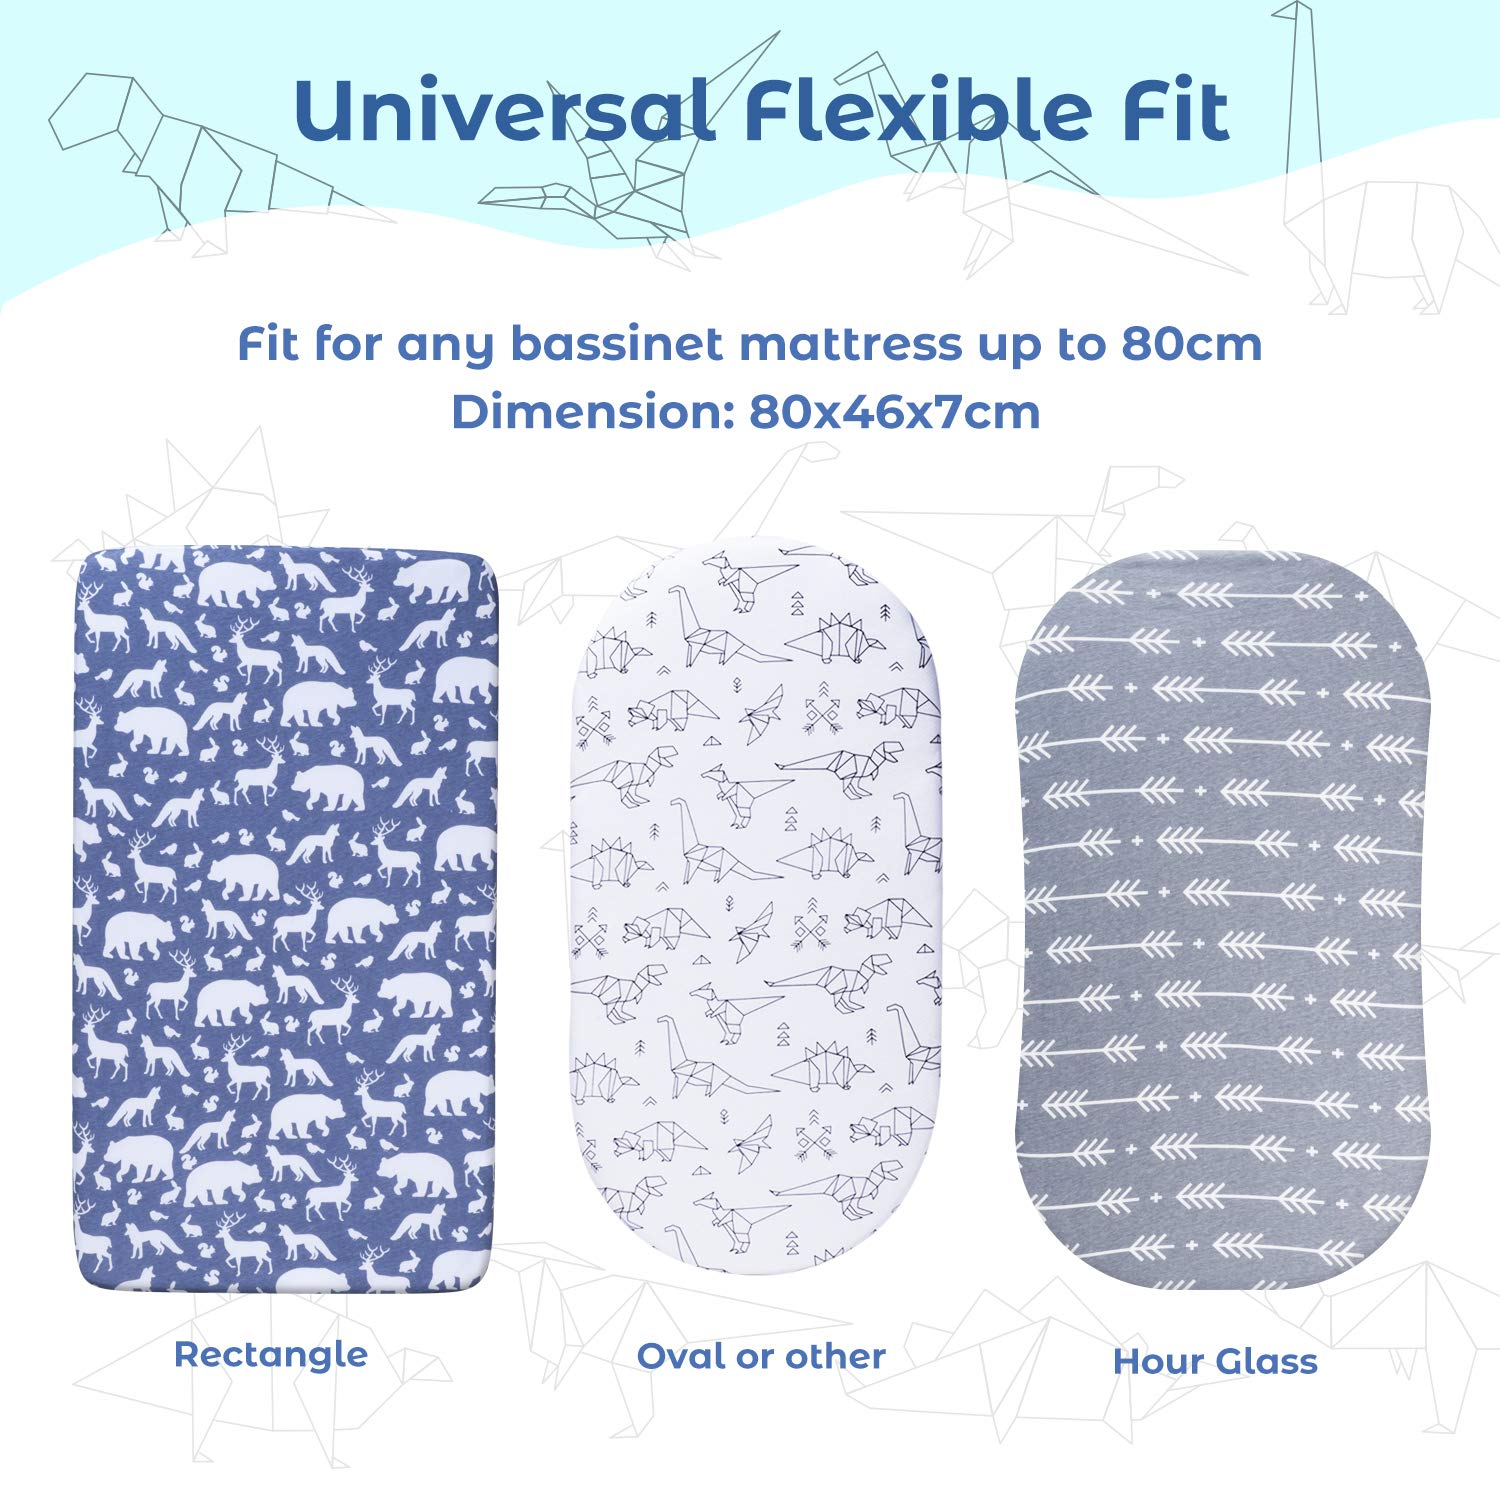 Tr/äumeland Alvi Cot Bed Sheets Crib Mattress Cover Mattress Protector for Boys /& Girls Fits Mother Nurture Momcozy Moses Basket Sheets Fitted Universal 3 Pack 74x28cm//67x30cm//65x28cm//80x46cm